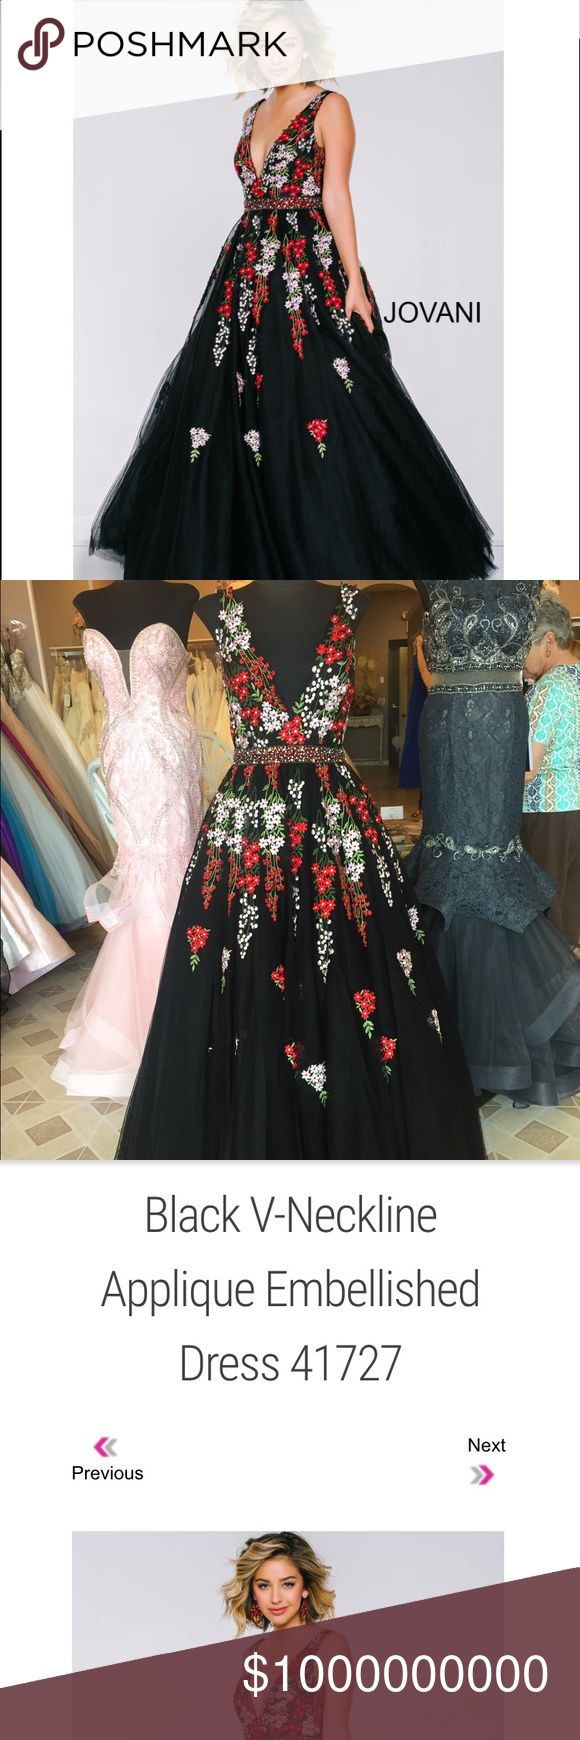 ISO Jovani Floral Embroidered Prom Dress ISO if anyone has this dress for sale it would be my dream to wear it for prom. I saw it in store but I didn't need it since I wasn't old enough to go to prom. But now that I am I would really like to find it! Jovani Dresses Prom